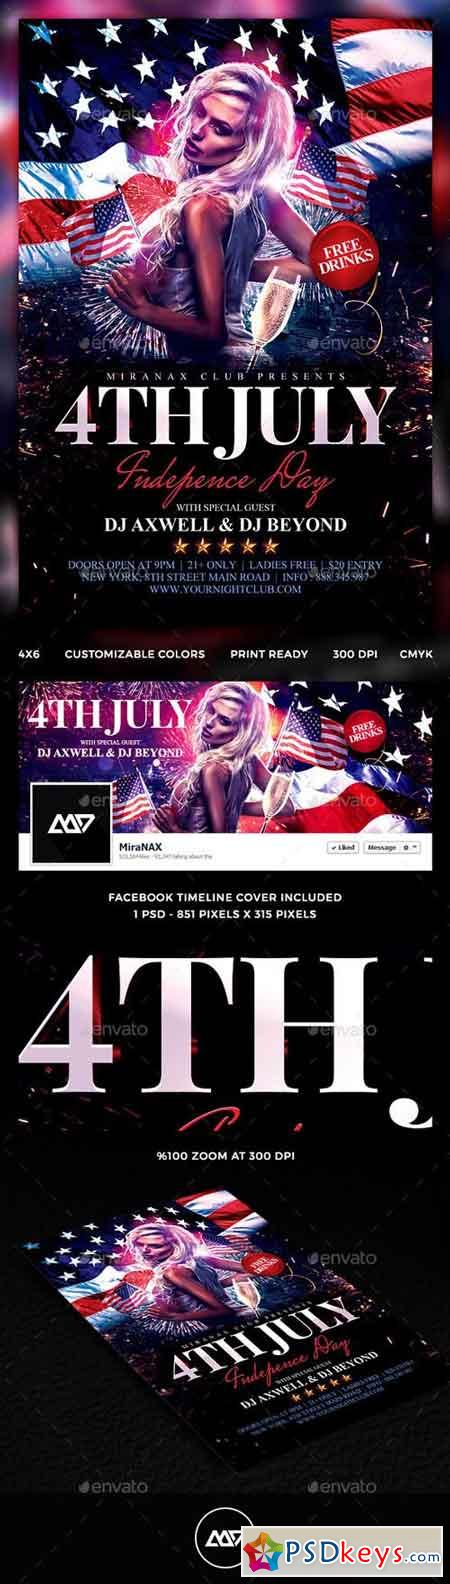 4th of July Flyer Template PSD 11601707